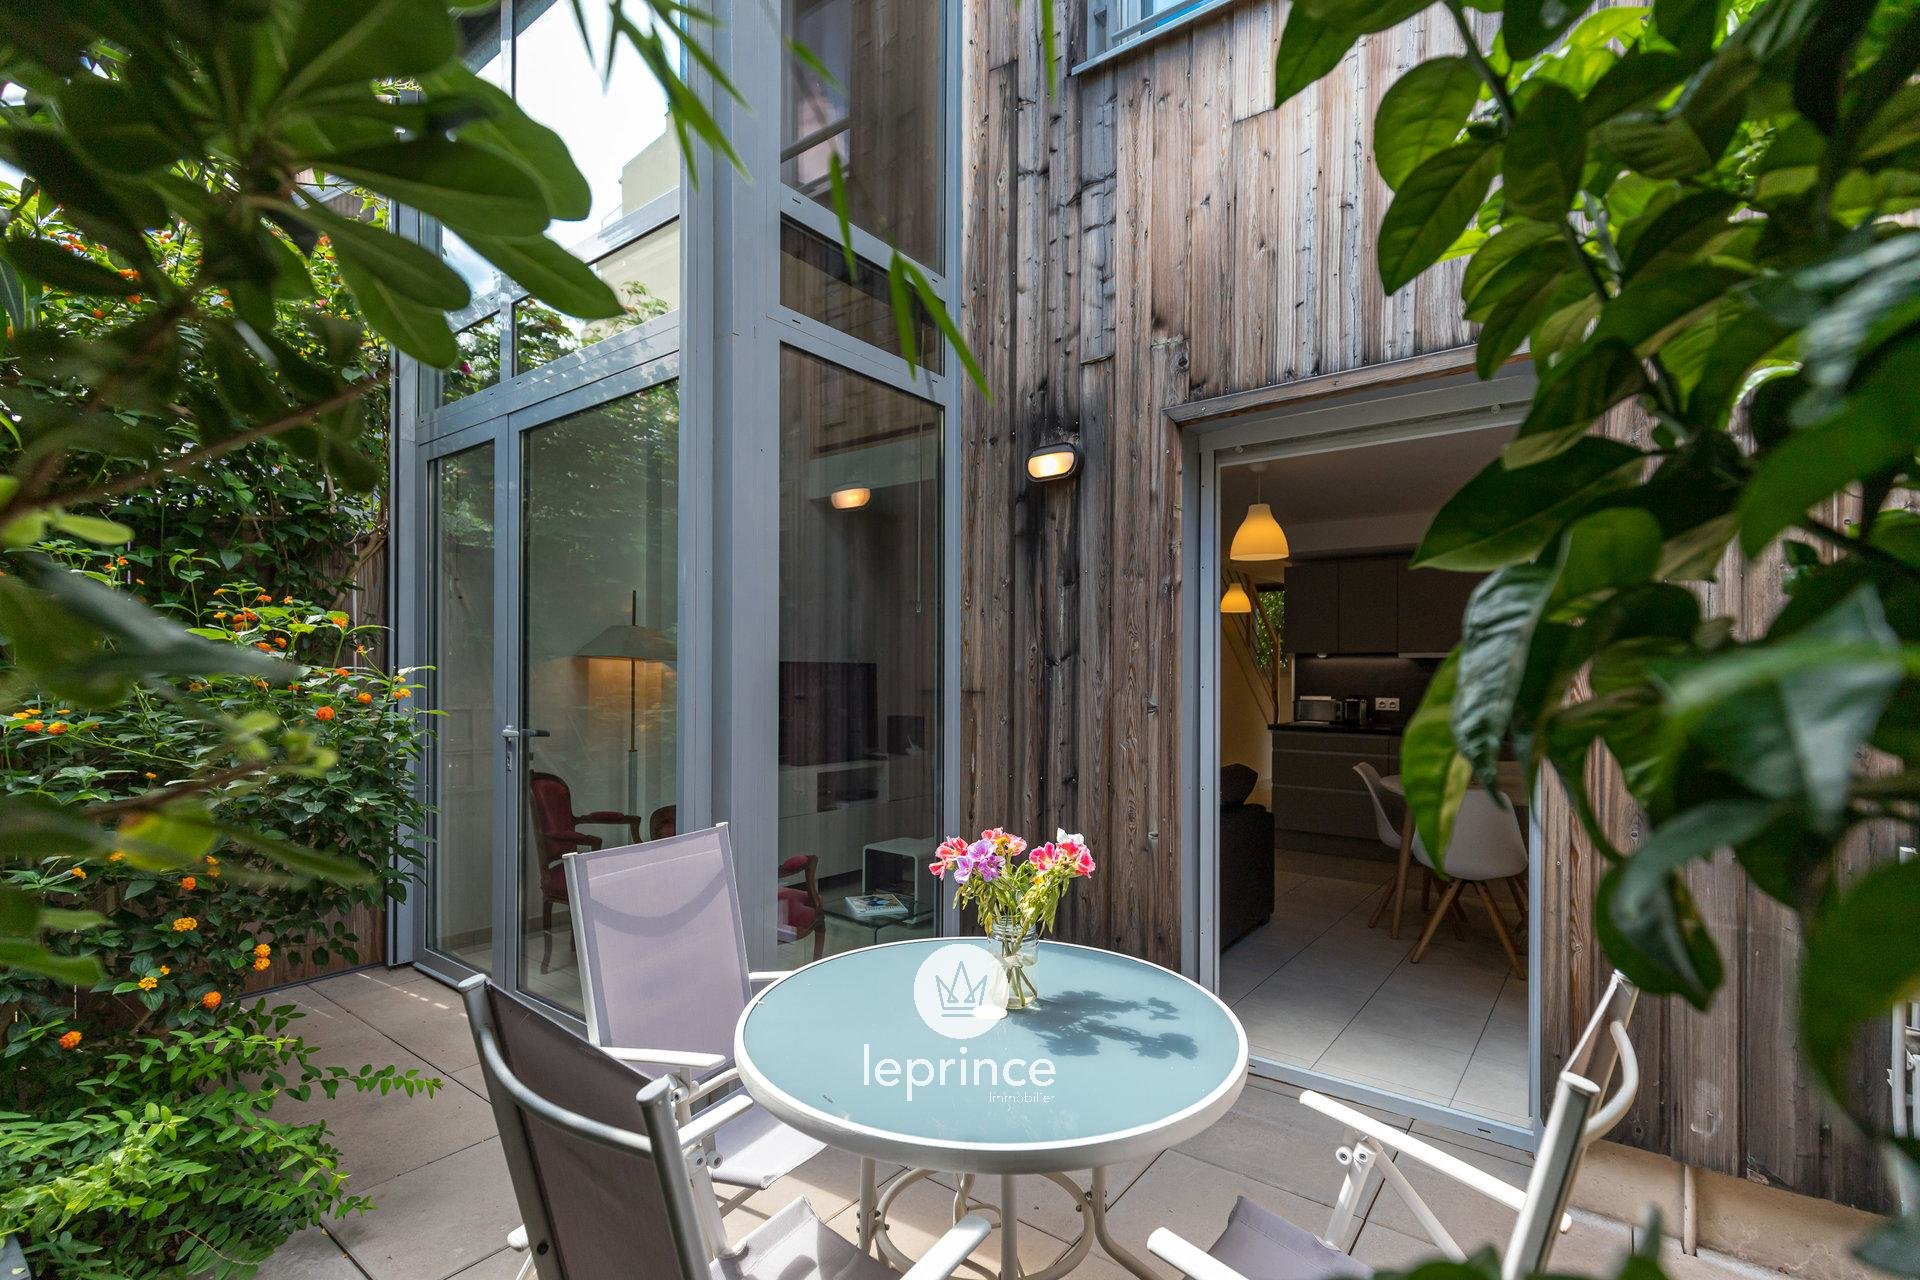 Nice Nord - Contemporary townhouse - 4 rooms - Terrace and Garden